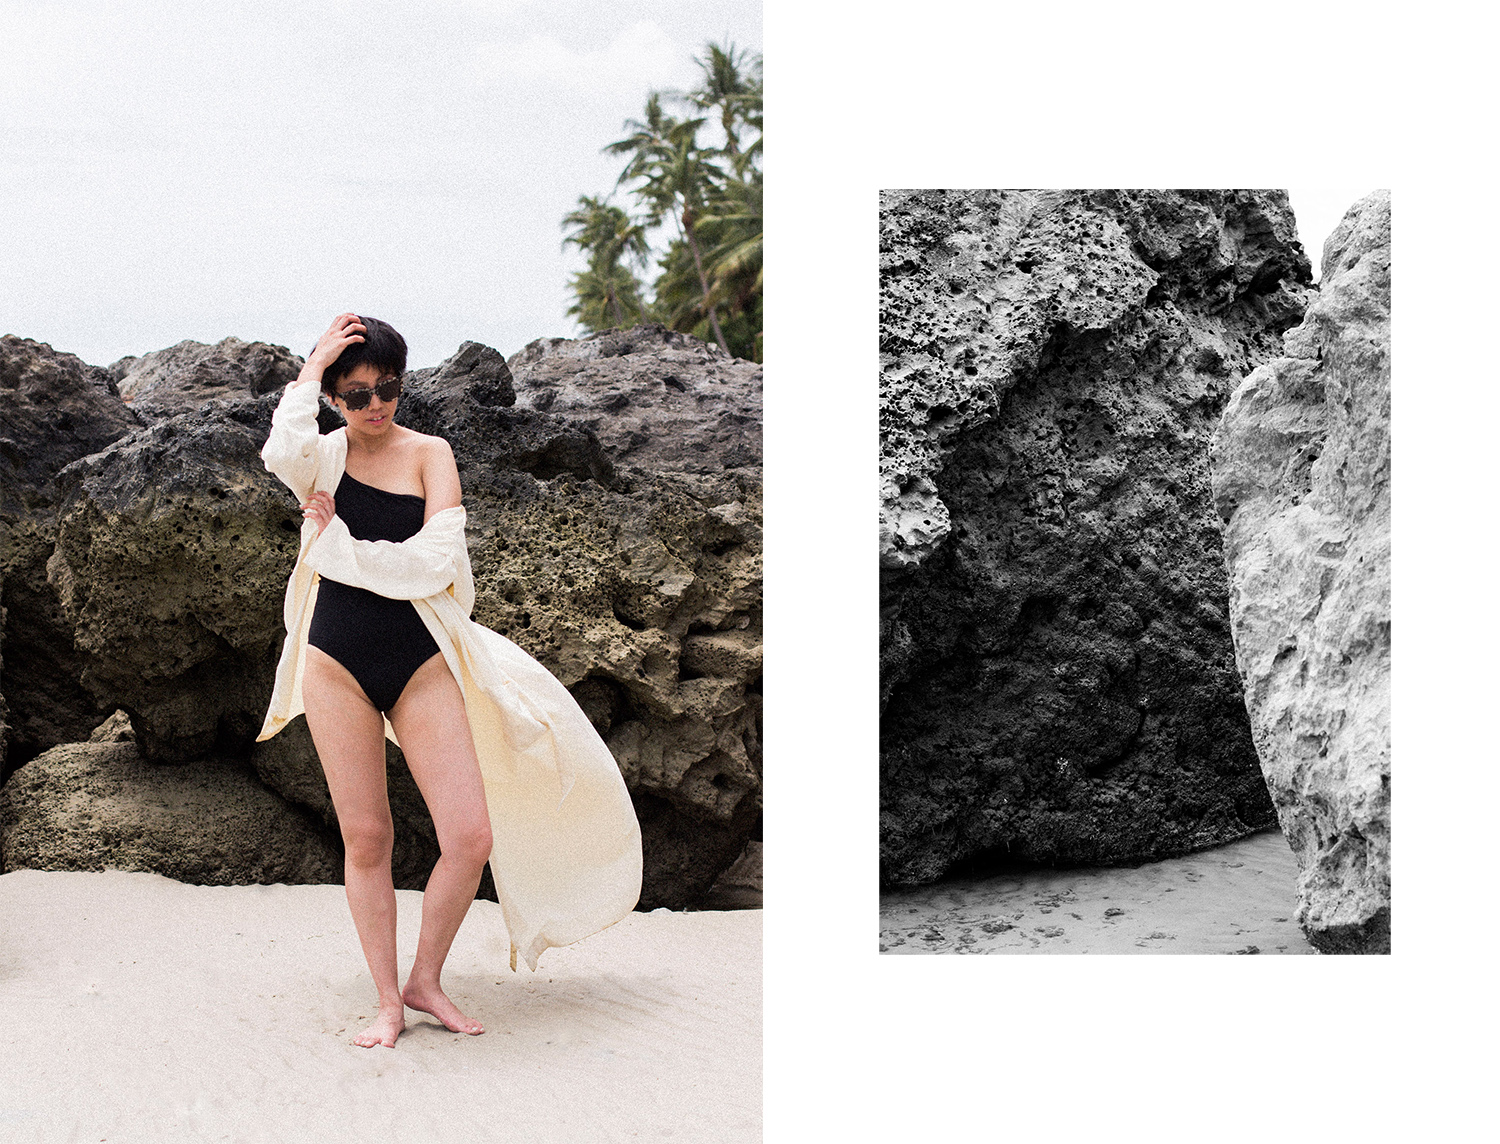 One-Shoulder Swimsuit & Ayurganic Bathrobe